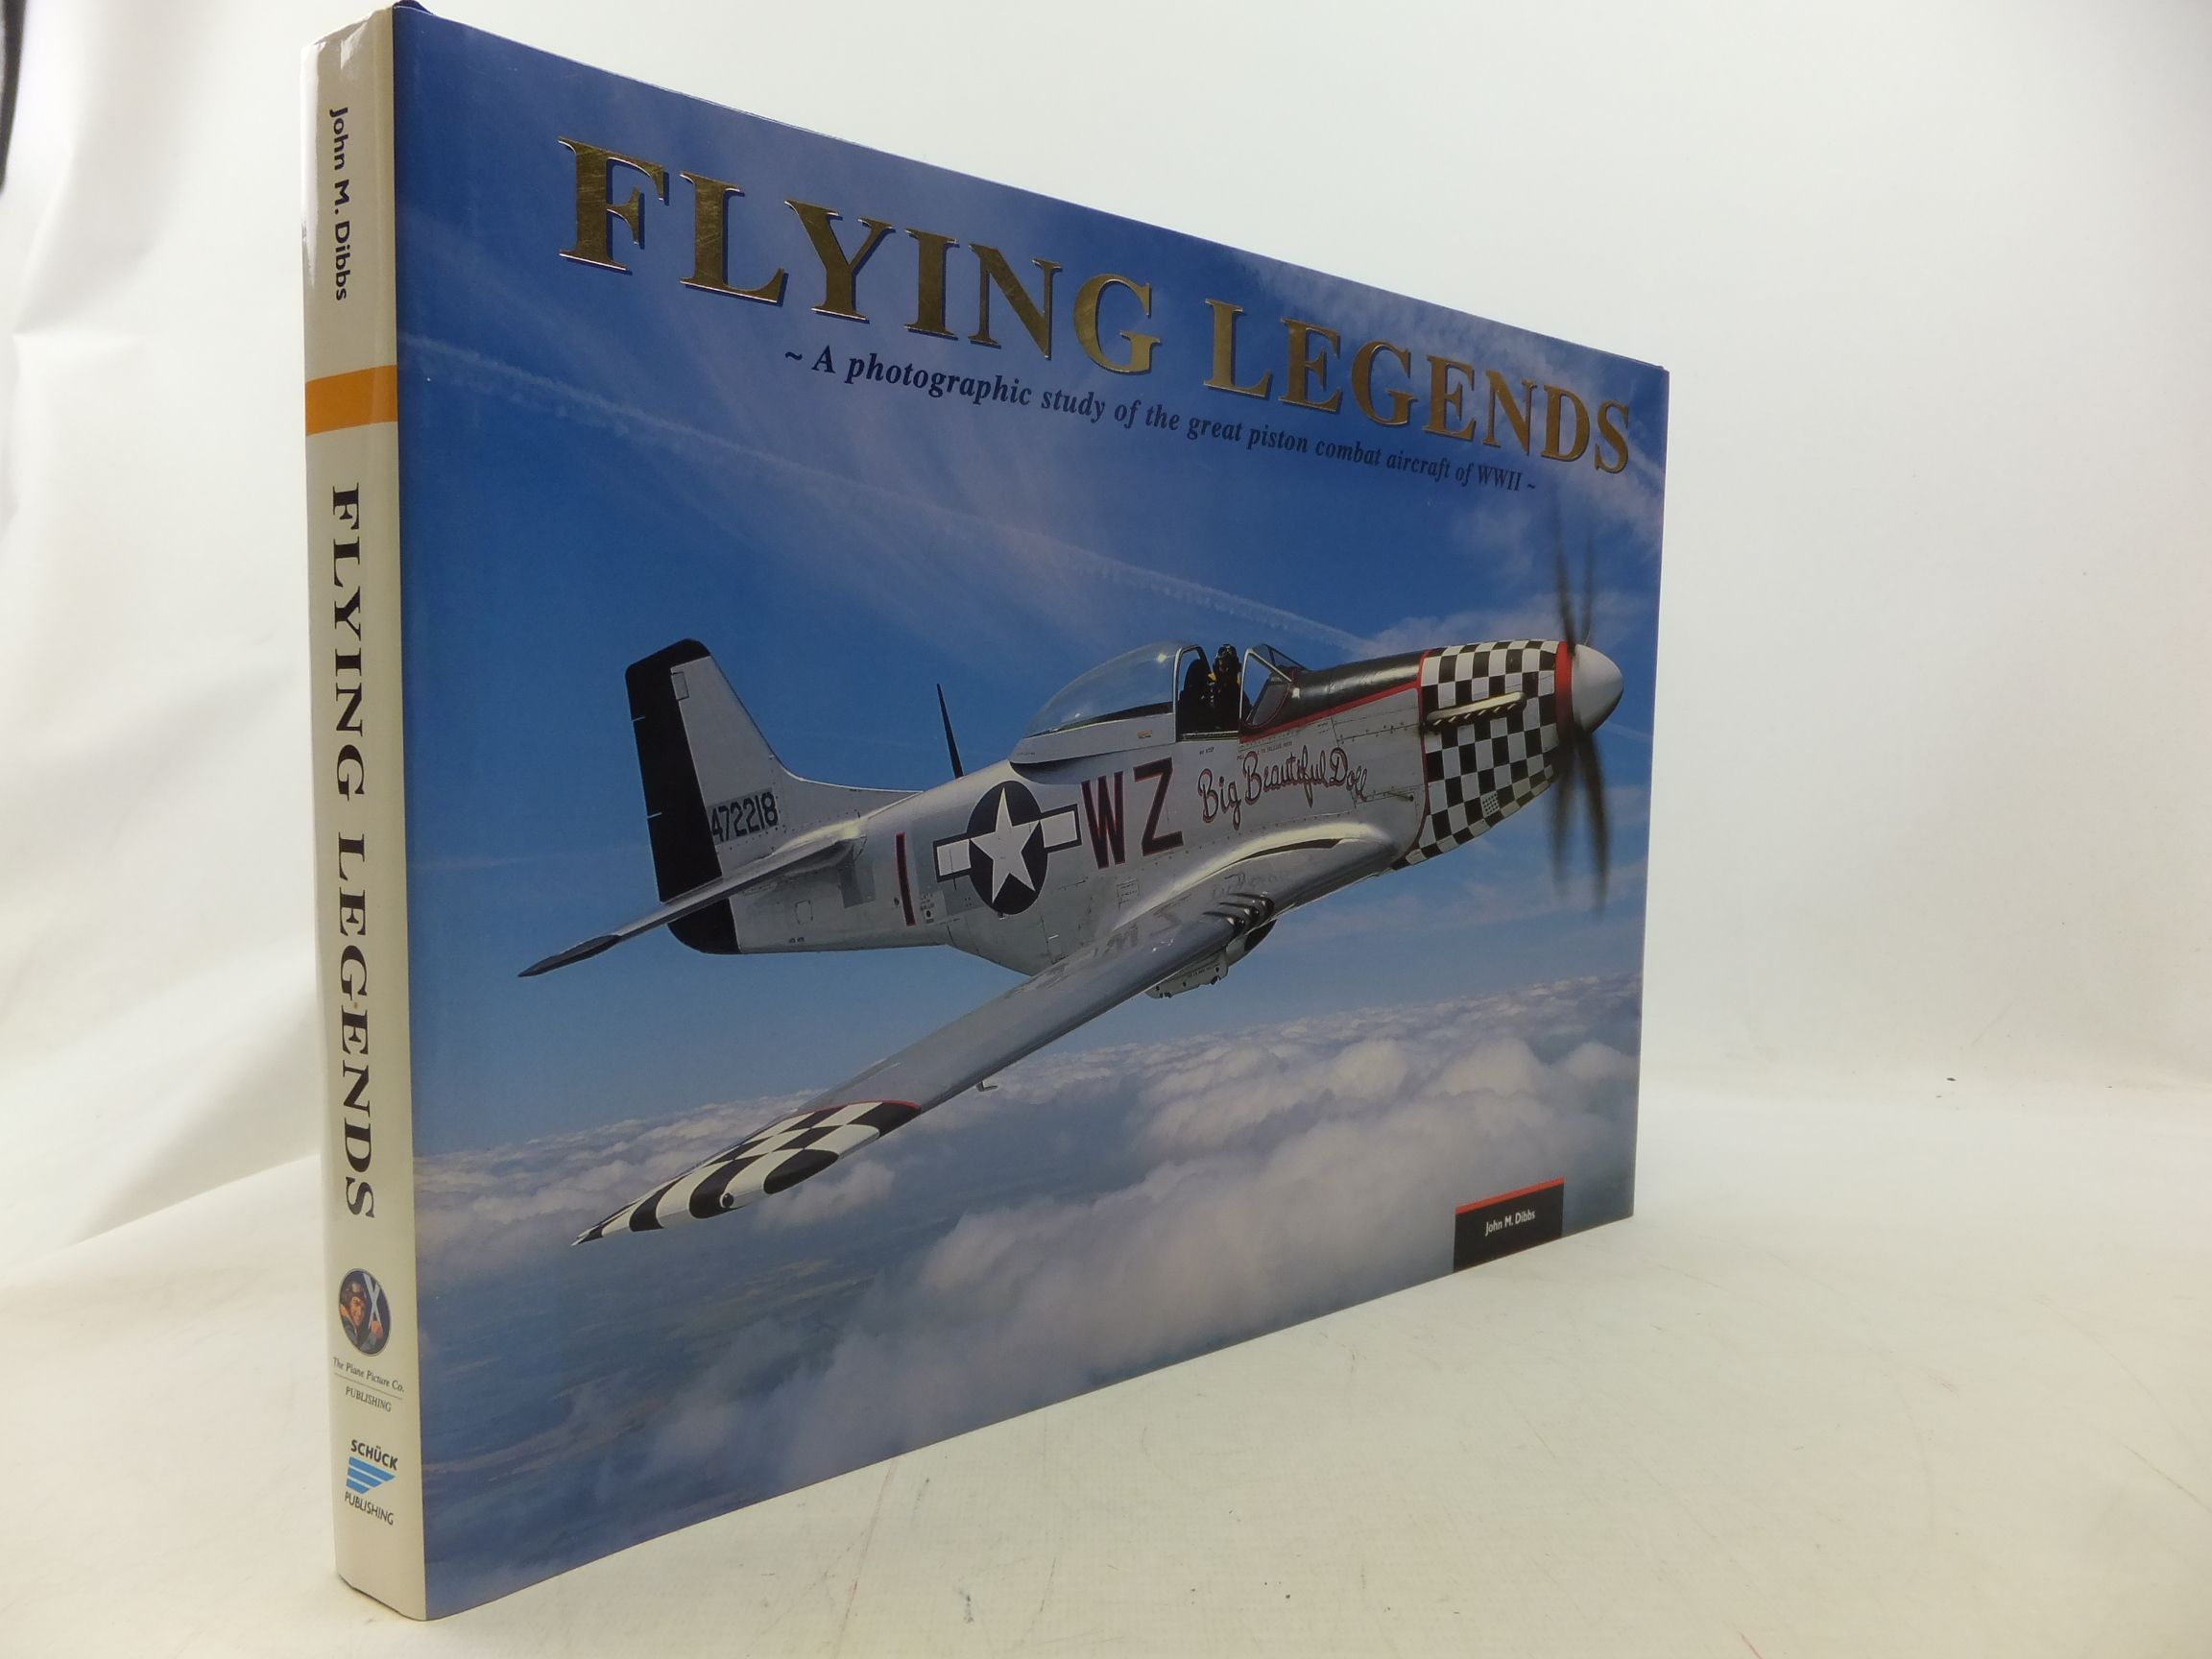 Photo of FLYING LEGENDS - A PHOTOGRAPHIC STUDY OF THE GREAT PISTON COMBAT AIRCRAFT OF WWII written by Holmes, Tony illustrated by Dibbs, John M. published by The Plane Picture Co. Publishing (STOCK CODE: 2114777)  for sale by Stella & Rose's Books